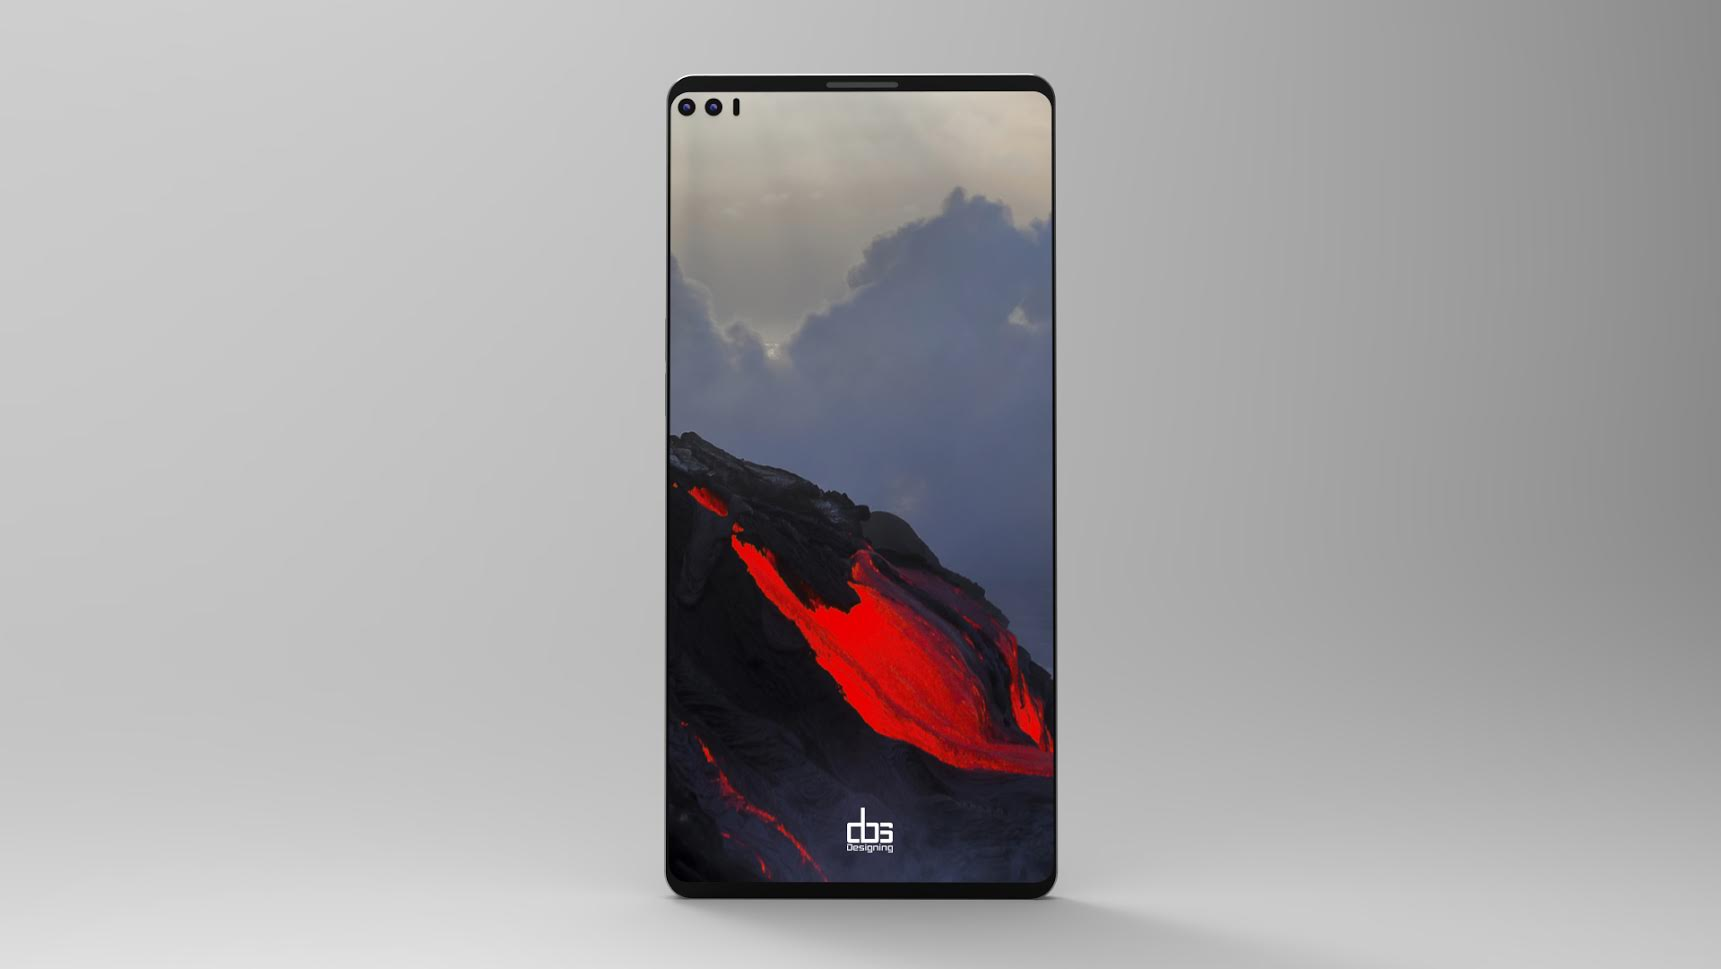 lg v30. lg v30 release date for north america leaked - android in canada blog lg n